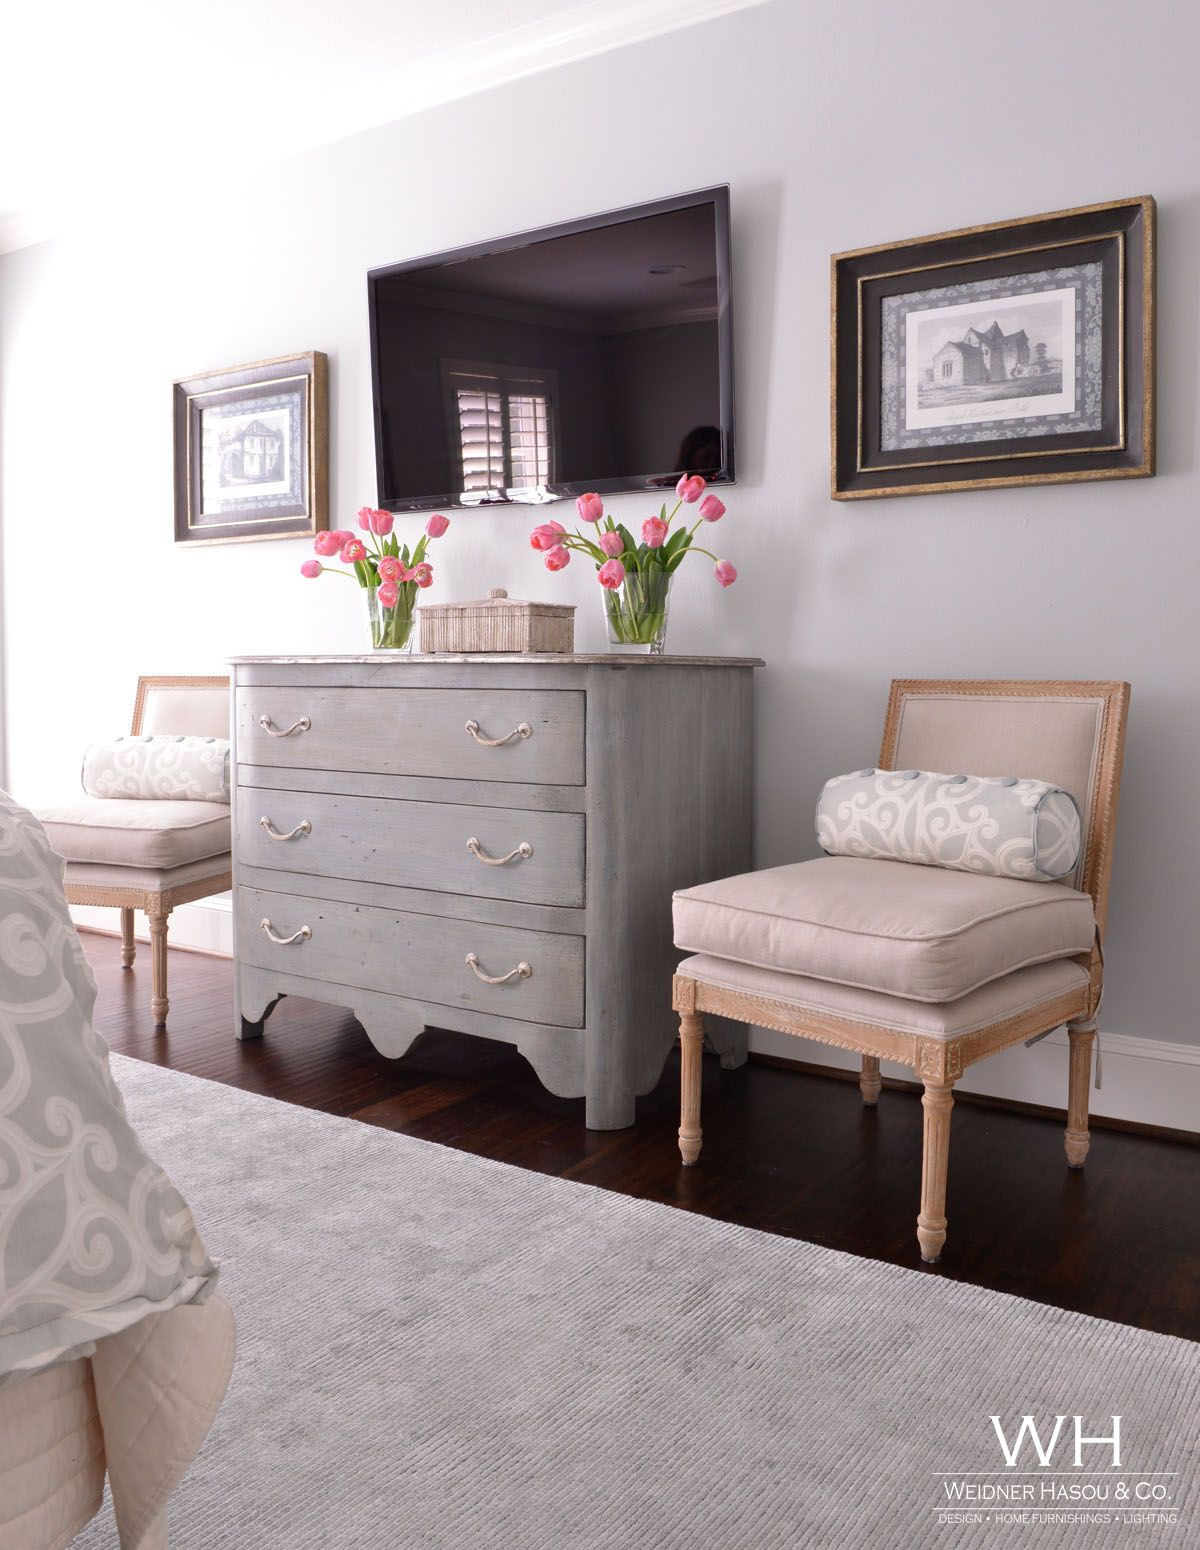 Memorial transitional gray cabinet old fashioned chairs and